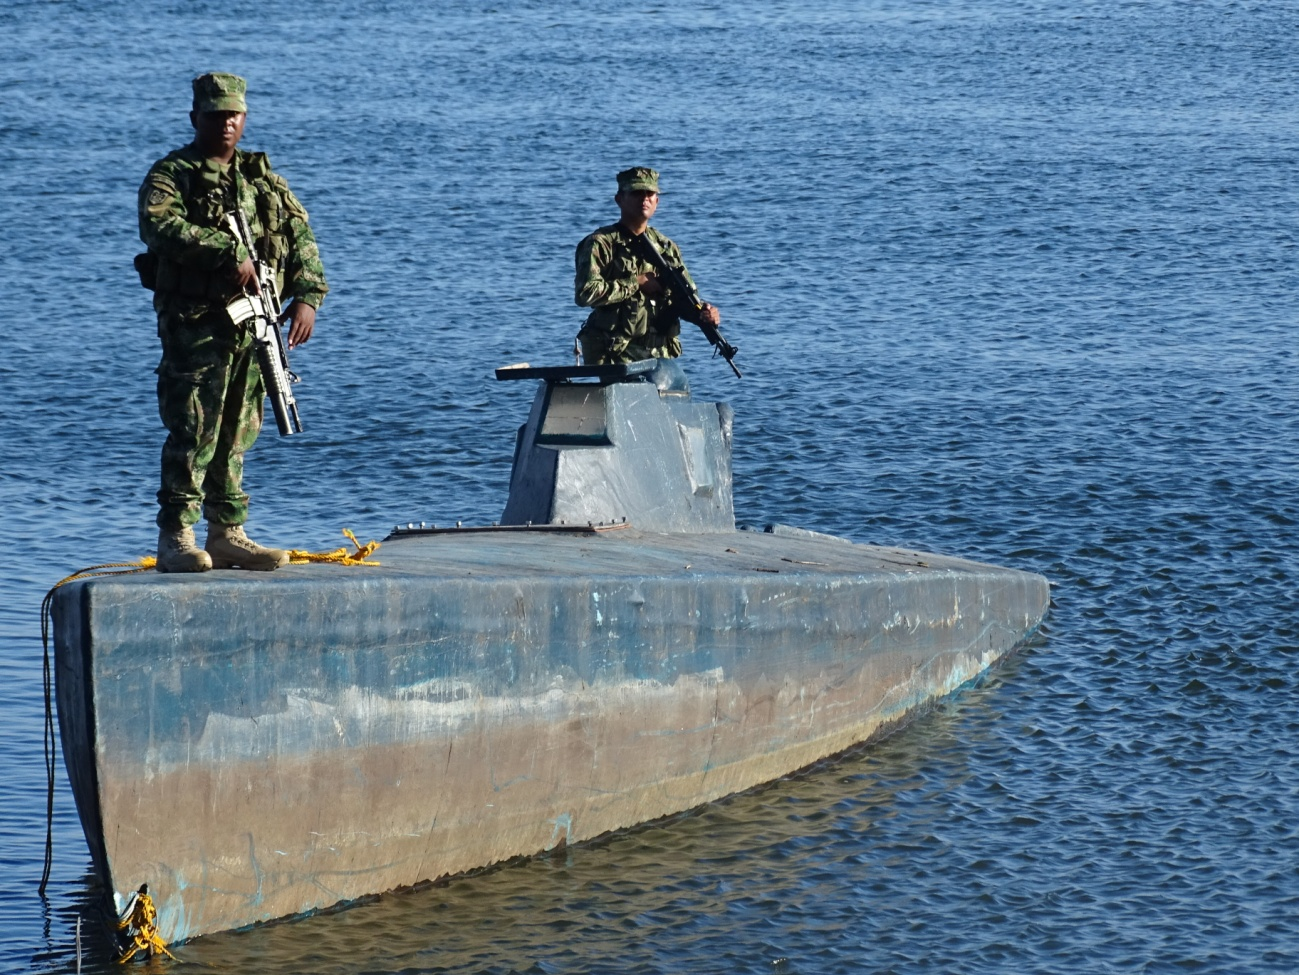 Colombian National Navy Neutralizes Another Drug-Trafficking Semi-Submersible